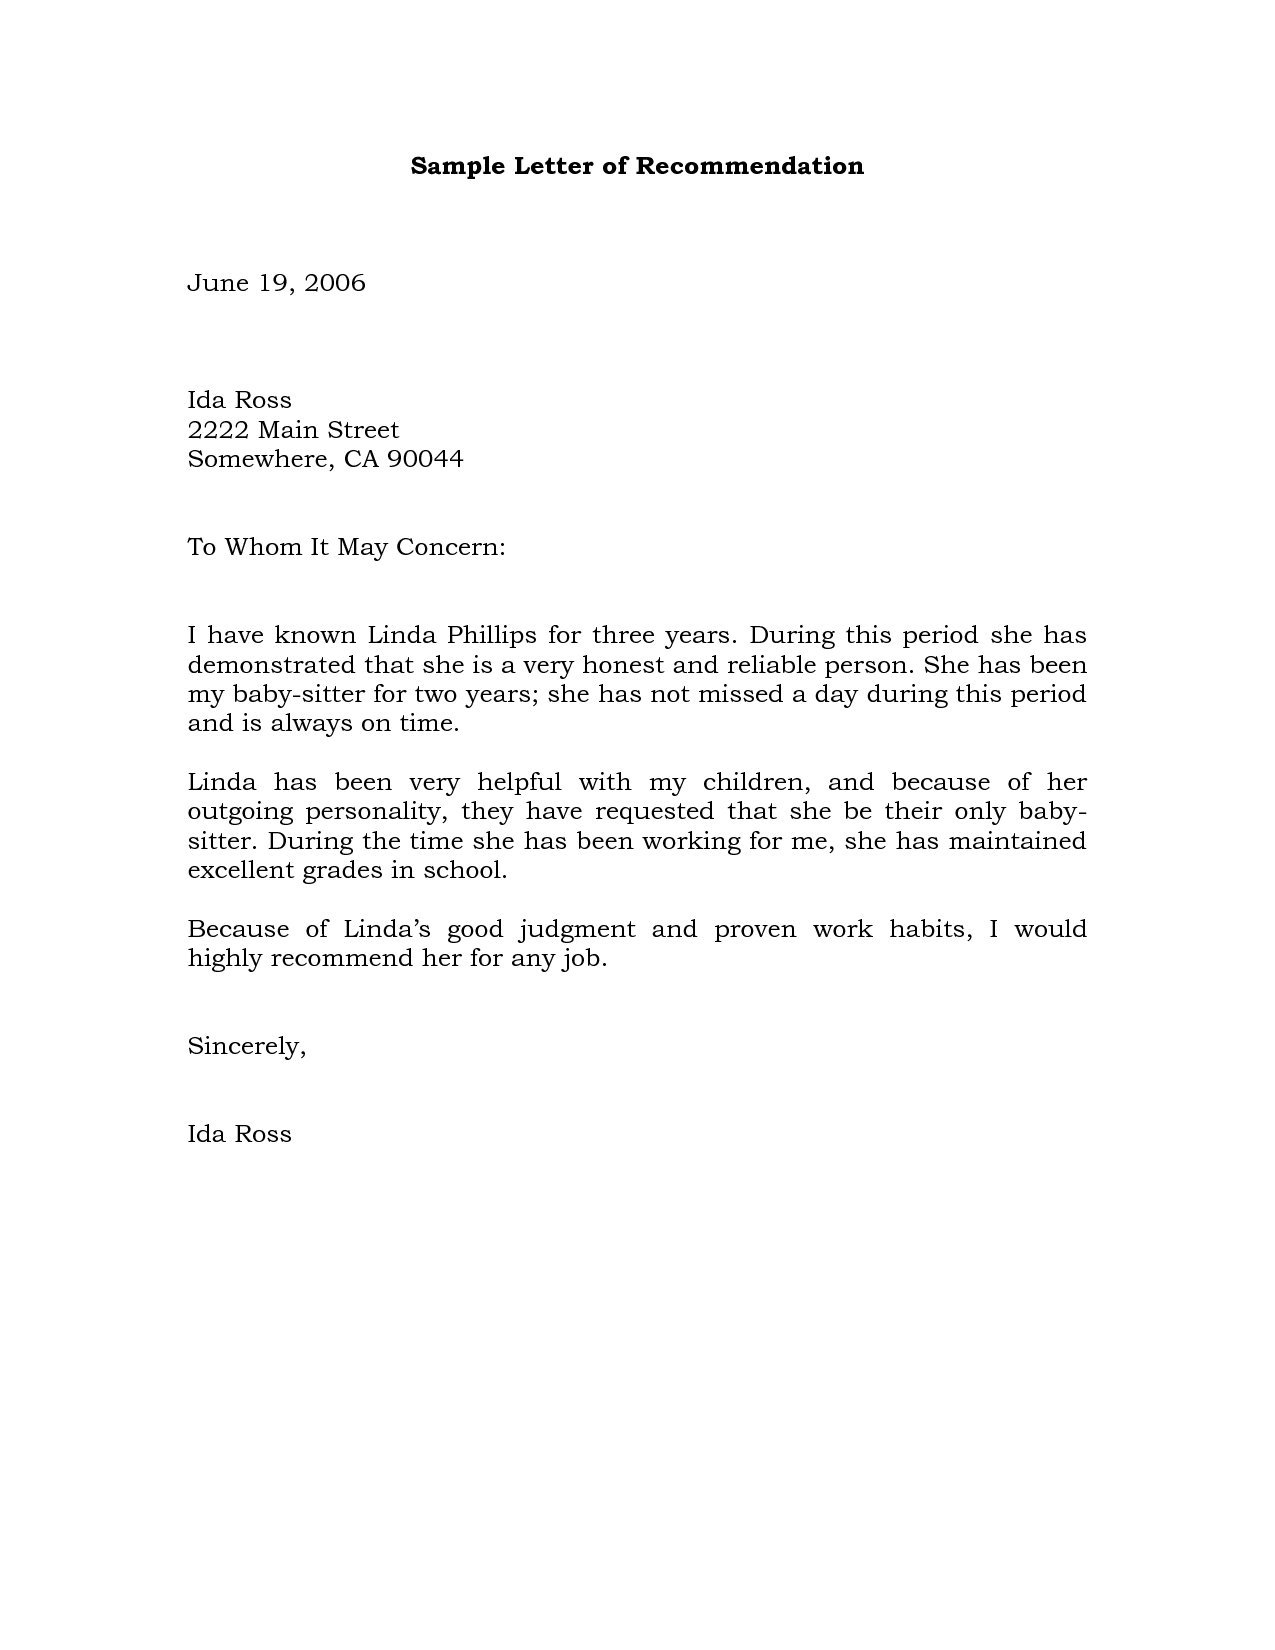 Template for Writing A Letter Of Recommendation for A Coworker - Sample Re Mendation Letter Example Projects to Try